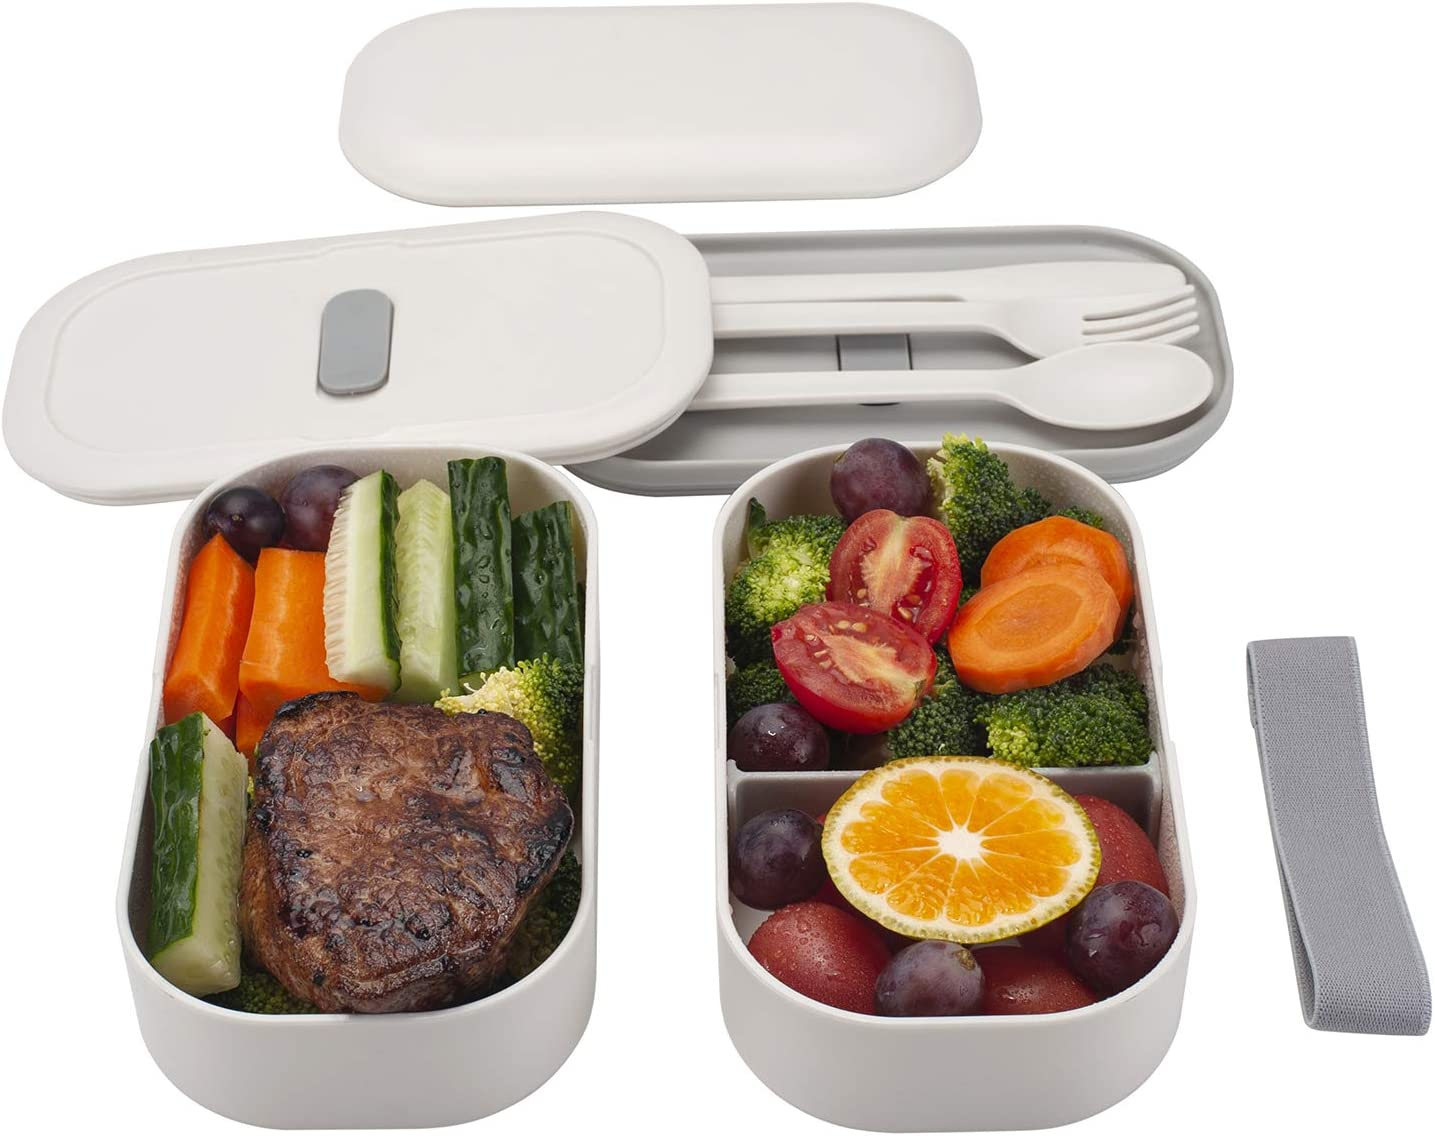 Freshmage Lunch Box Japanese Bento Box, Leak-proof Microwave Safe Stackable 2 Layers Plastic Lunch Container with Spoon, Fork, Knife for Kids Toddlers Women Adults (White)